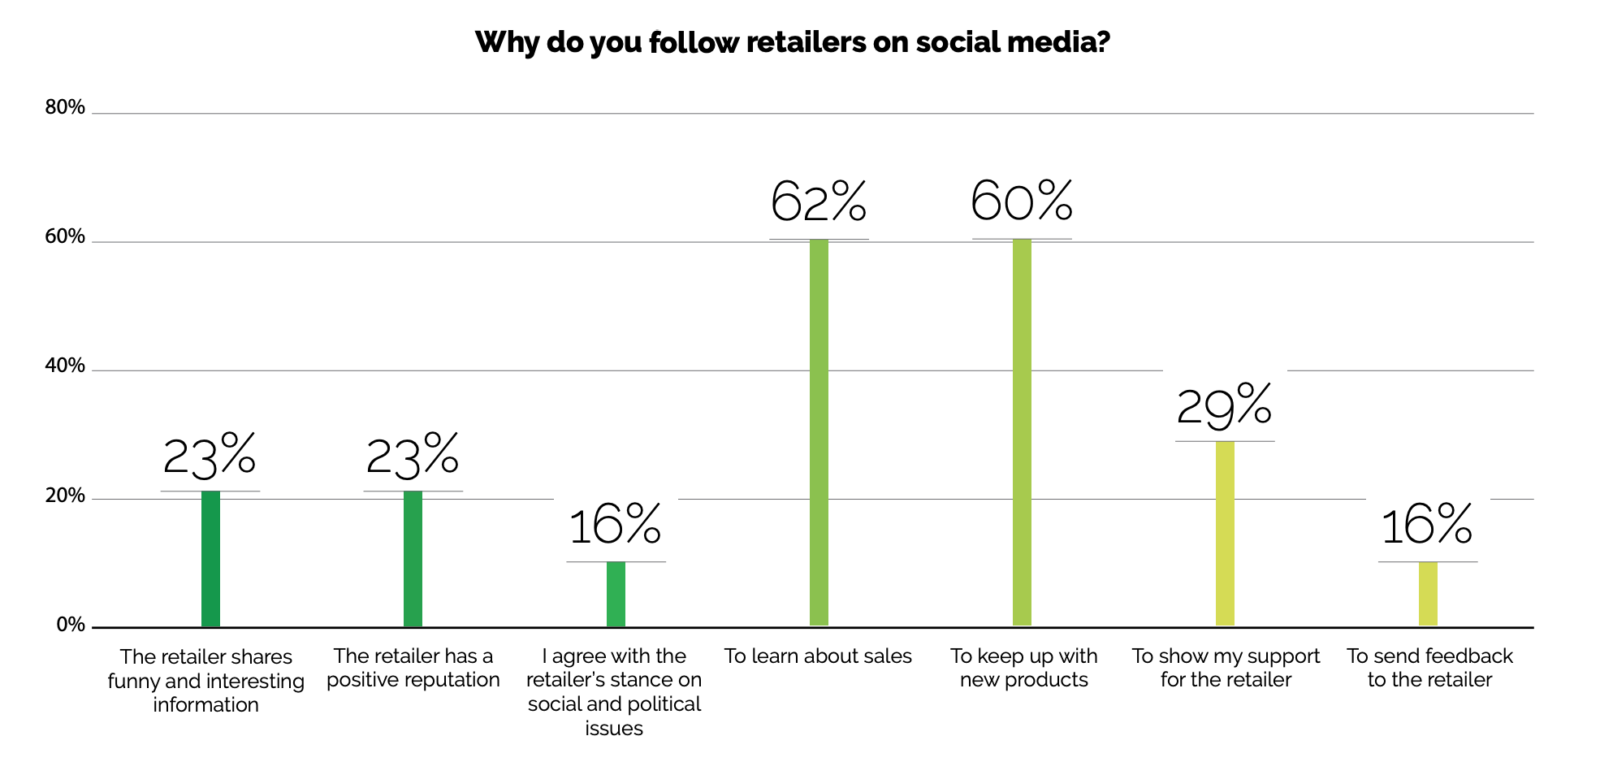 Why do you follow retailers on social